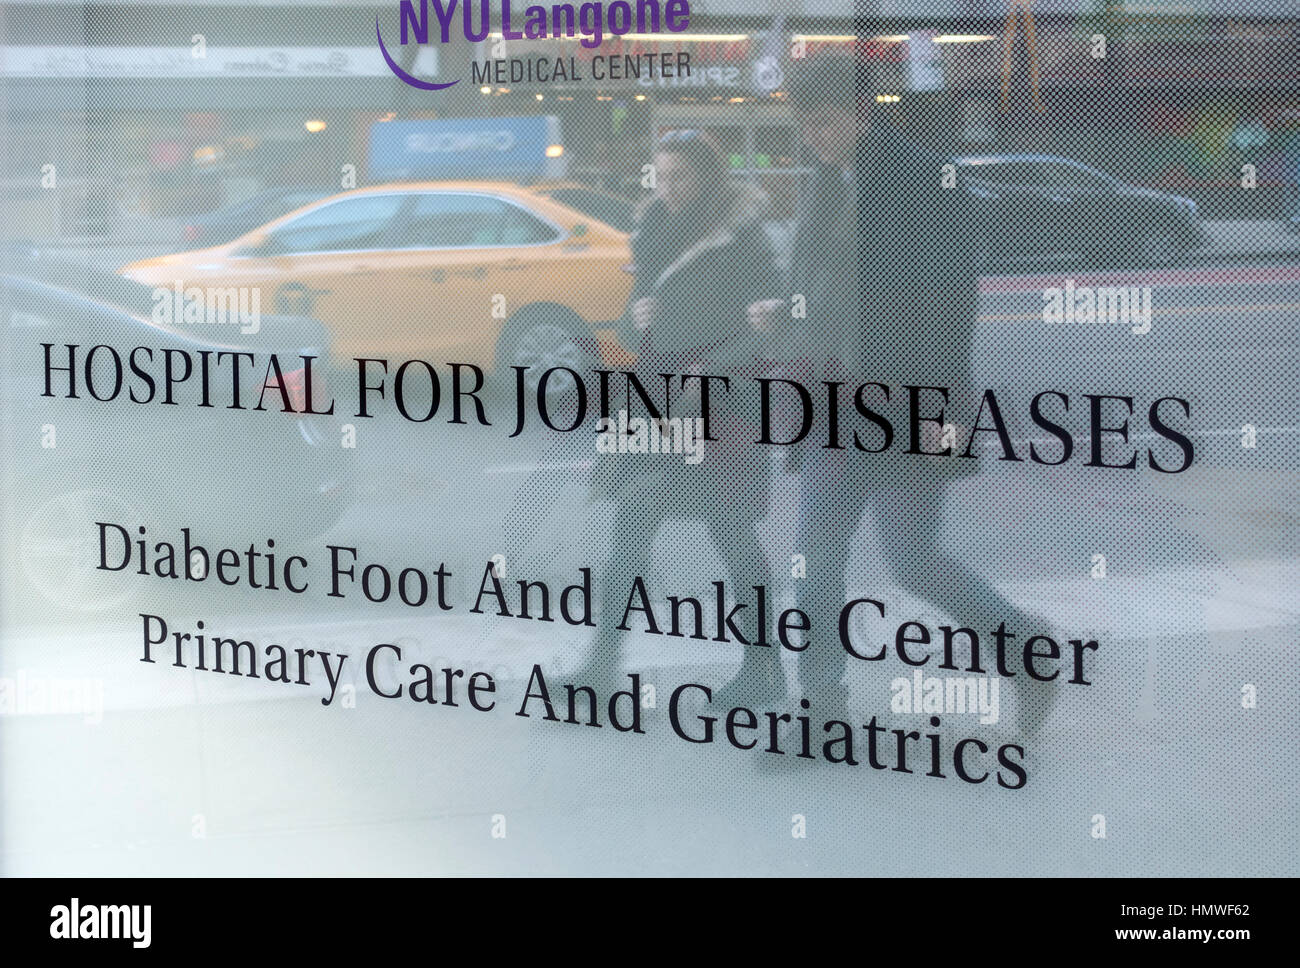 Hospital for Joint Diseases in New York City - Stock Image